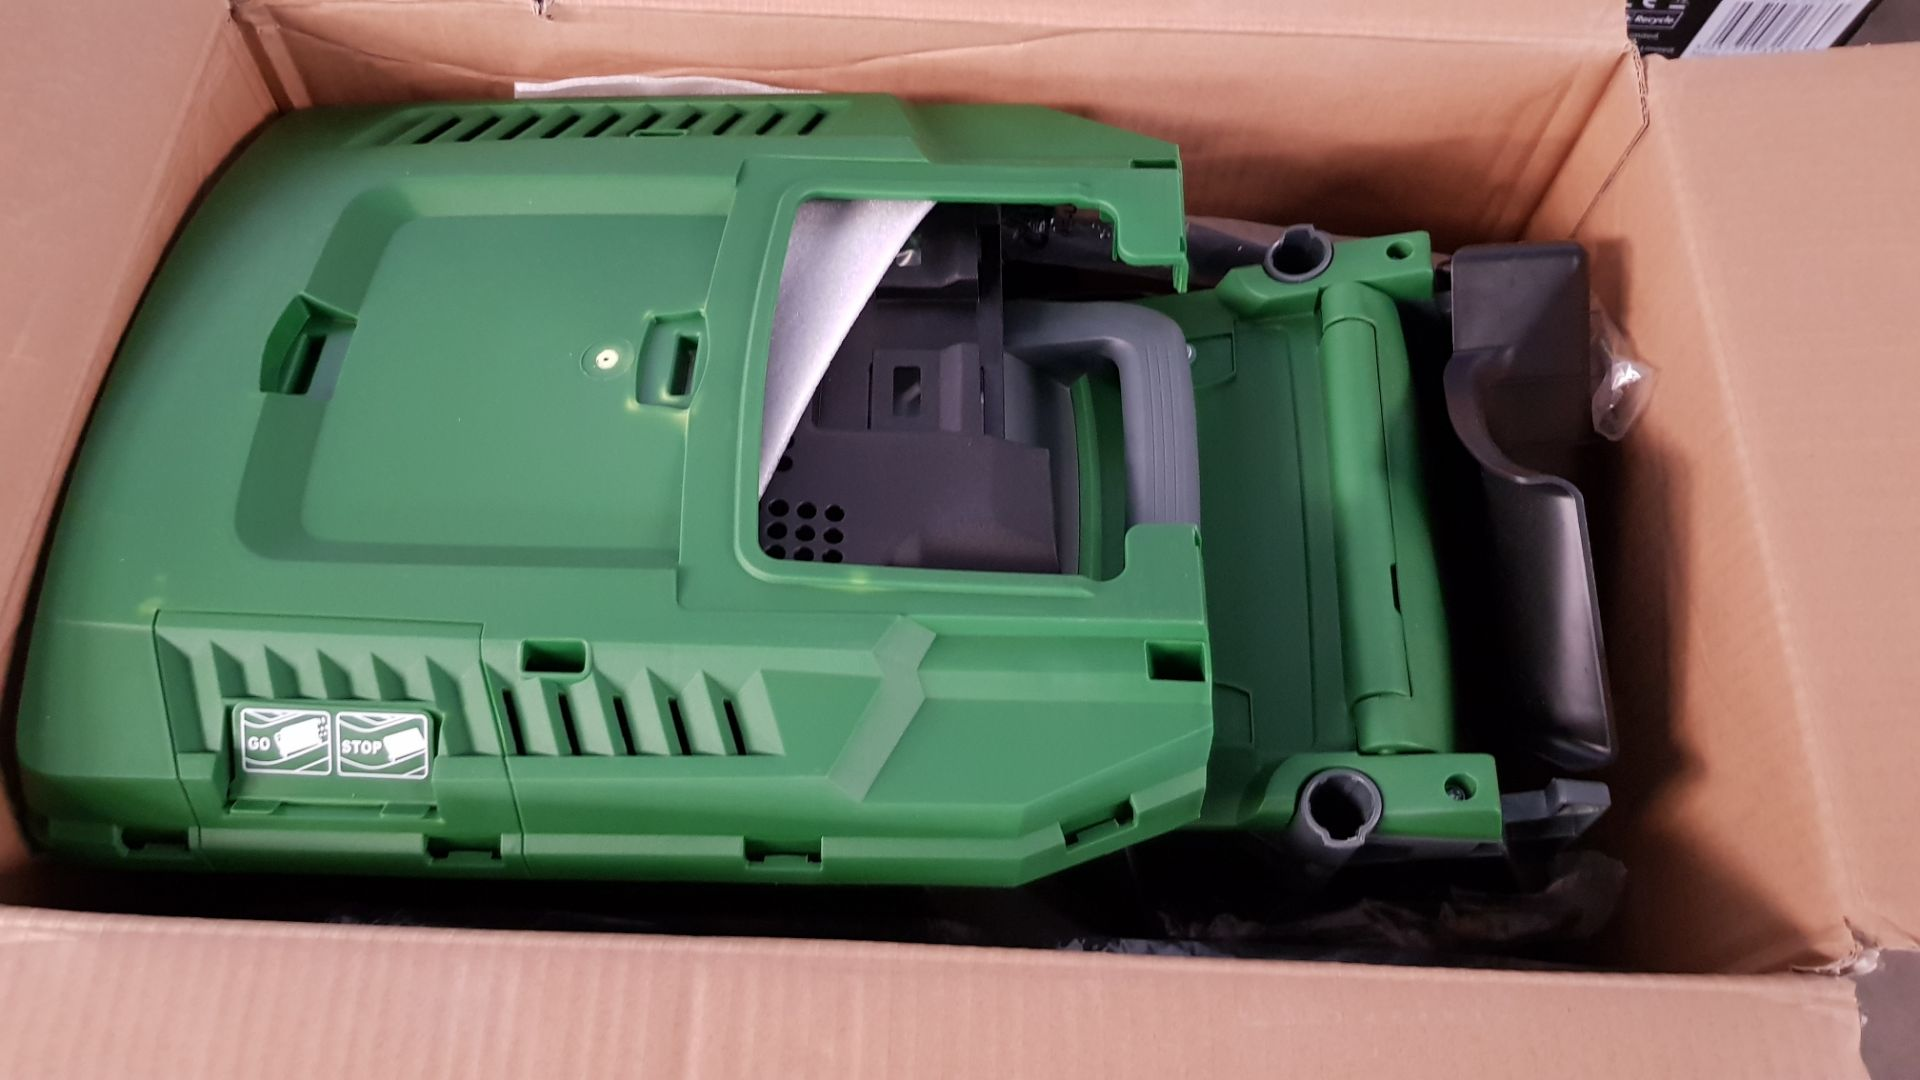 (P8) 1x Powerbase 32cm 1200W Electric Rotary Lawnmower RRP £59. Contents Appear As New, Clean & Not - Image 4 of 4